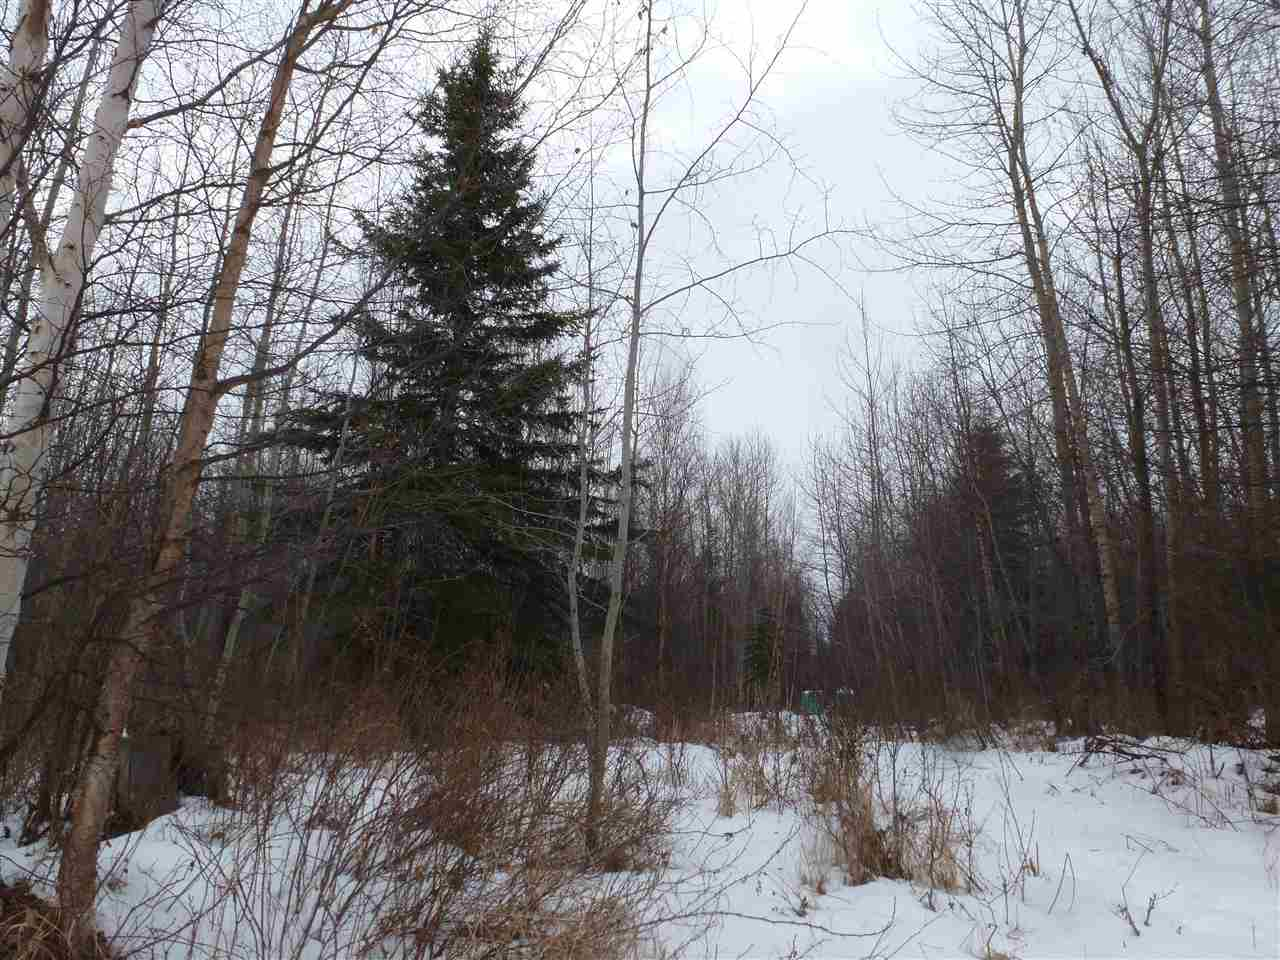 Need a Get-a-Way Place - this is it - Peace & Tranquility & Nature! 4.99 Treed Acres in the Connor Creek area North of Mayerthorpe. Build your Dream Home - Build a Cabin! Central to Whitecourt, Barrhead & Mayerthorpe and close to theConnor Creek Community Pasture for excellent hunting!